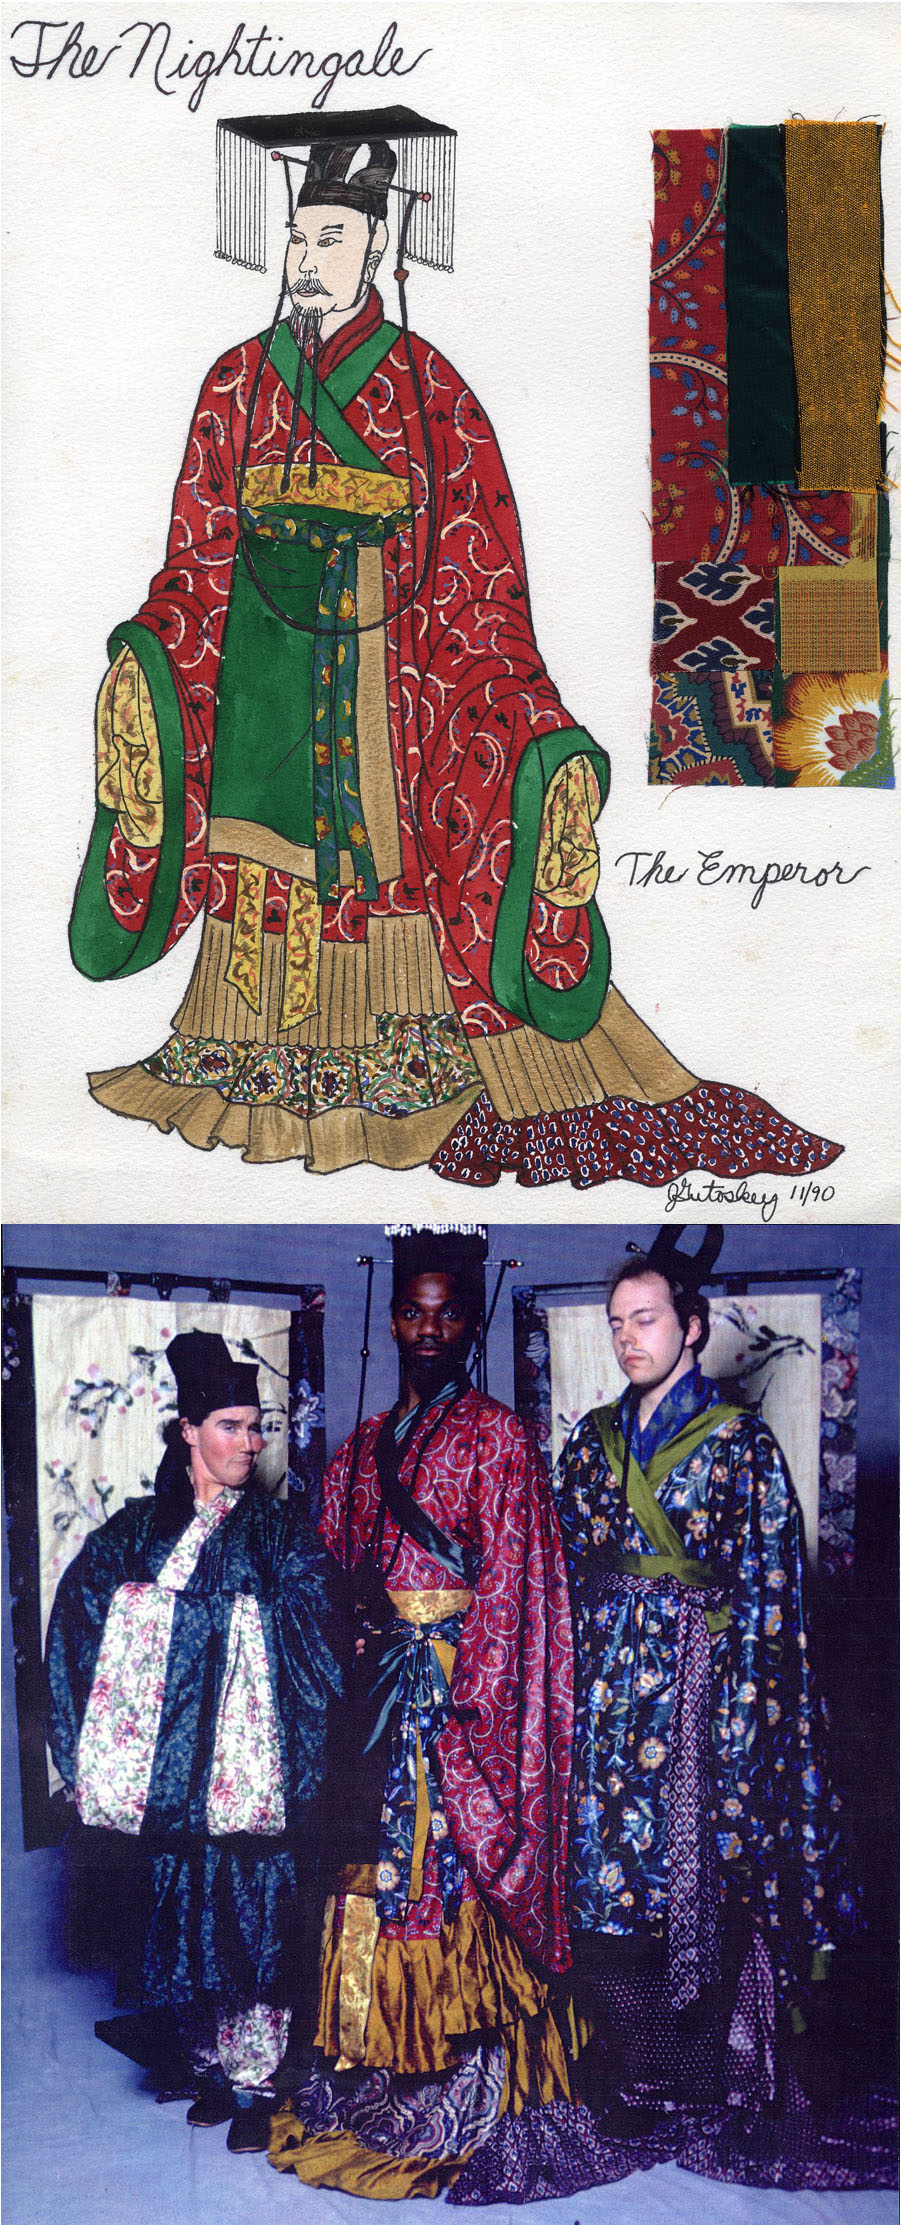 "My costume designs and costume construction for ""The Nightingale\""  for Wild Swan Theater Ann Arbor, Michigan 1990."